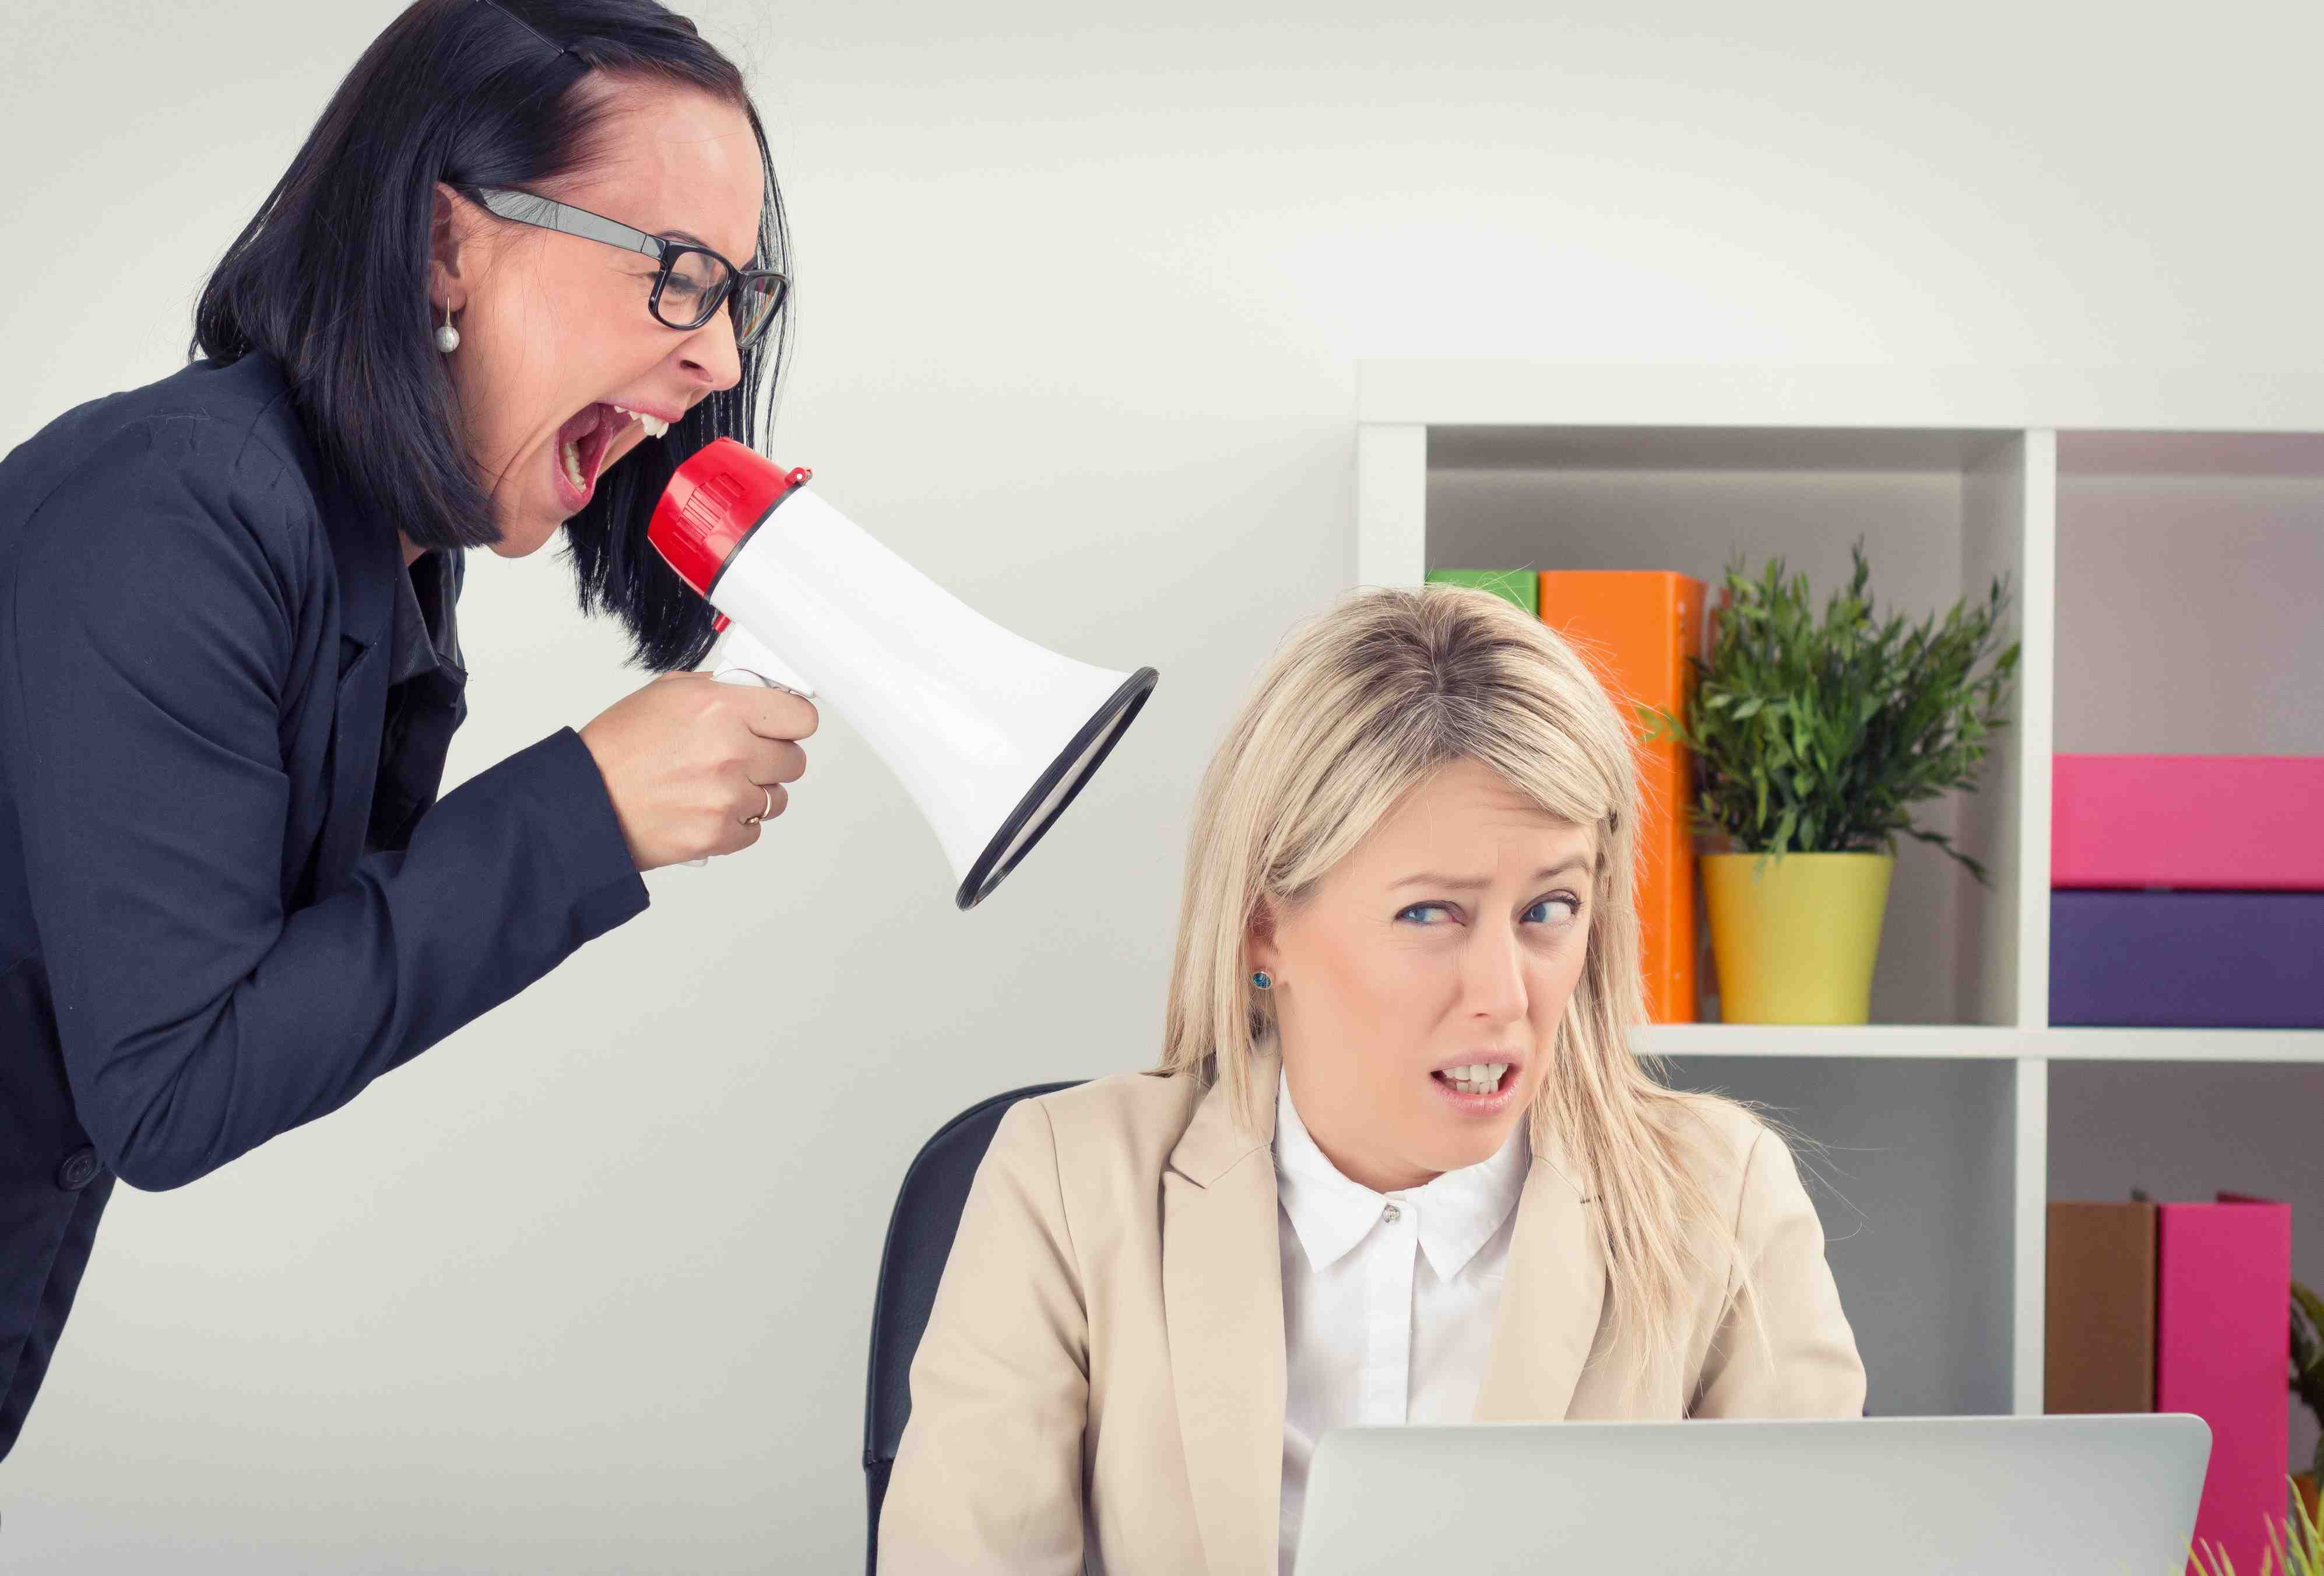 bad manager 2017-03-30 rita sever, author of supervision matters, identifies nine signs you're a bad manager.